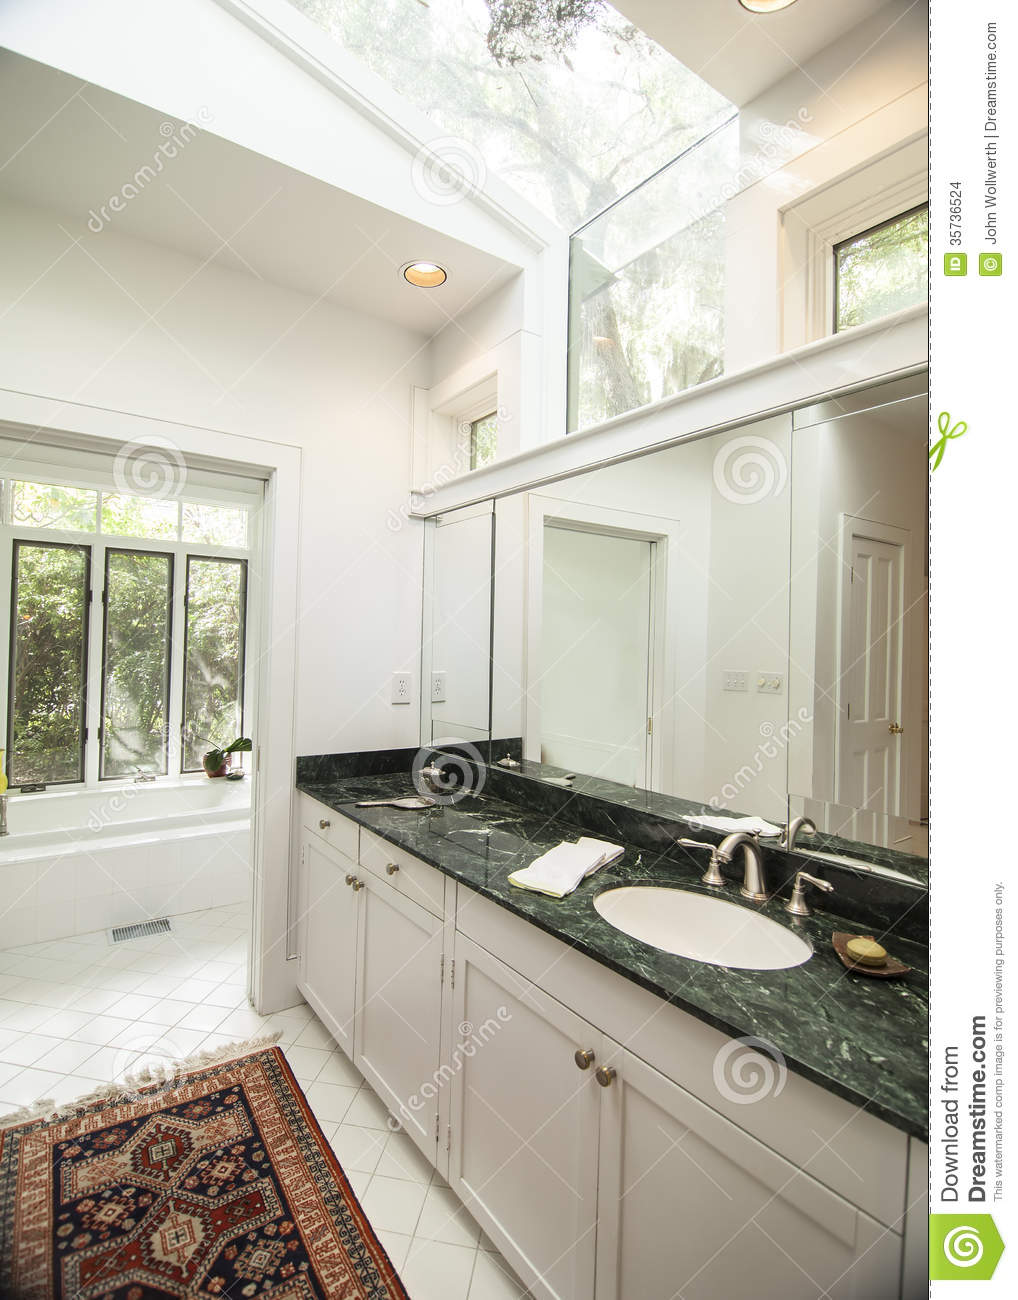 Simple Modern Bathroom With Black Granite Counter Stock Photo ...